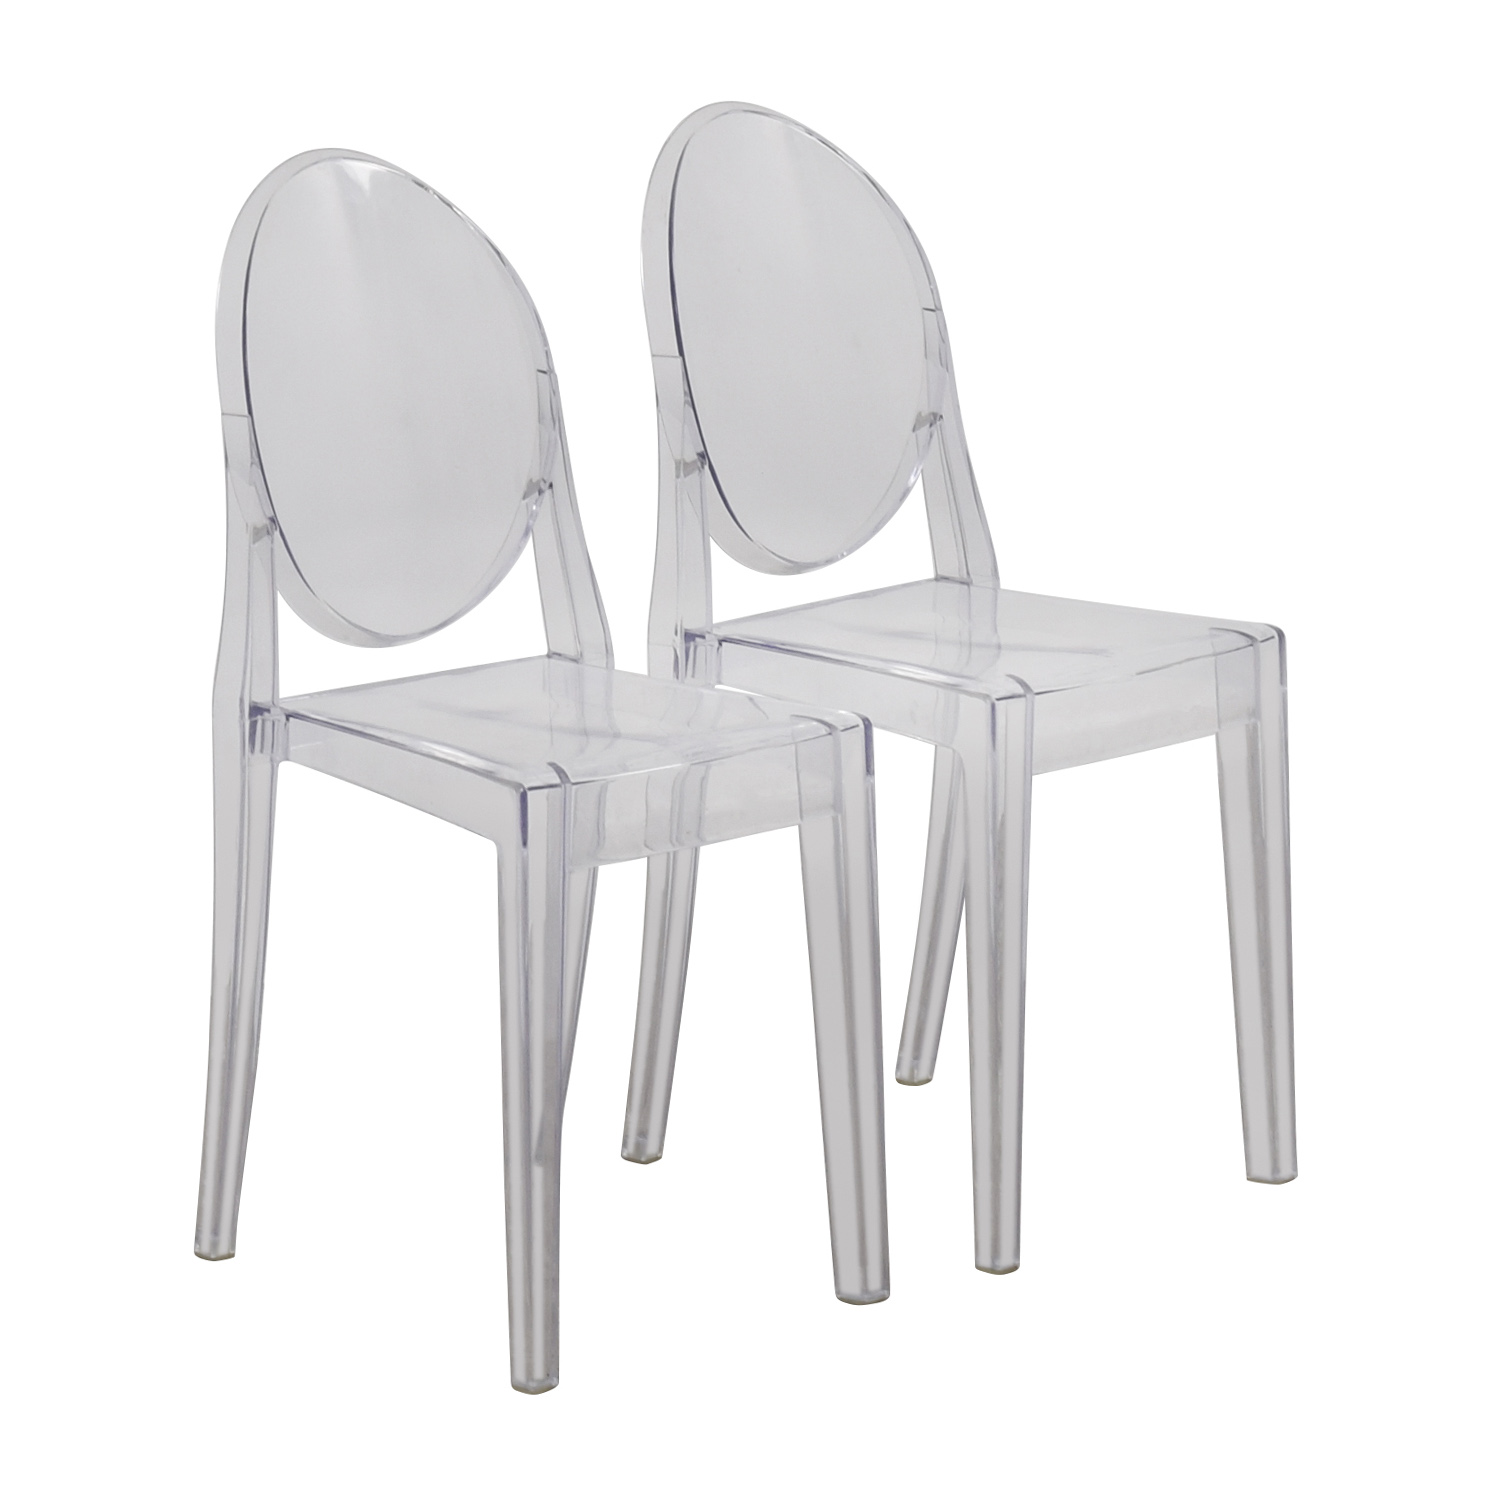 ... Buy Flash Furniture Ghost Side Chairs Flash Furniture Chairs ...